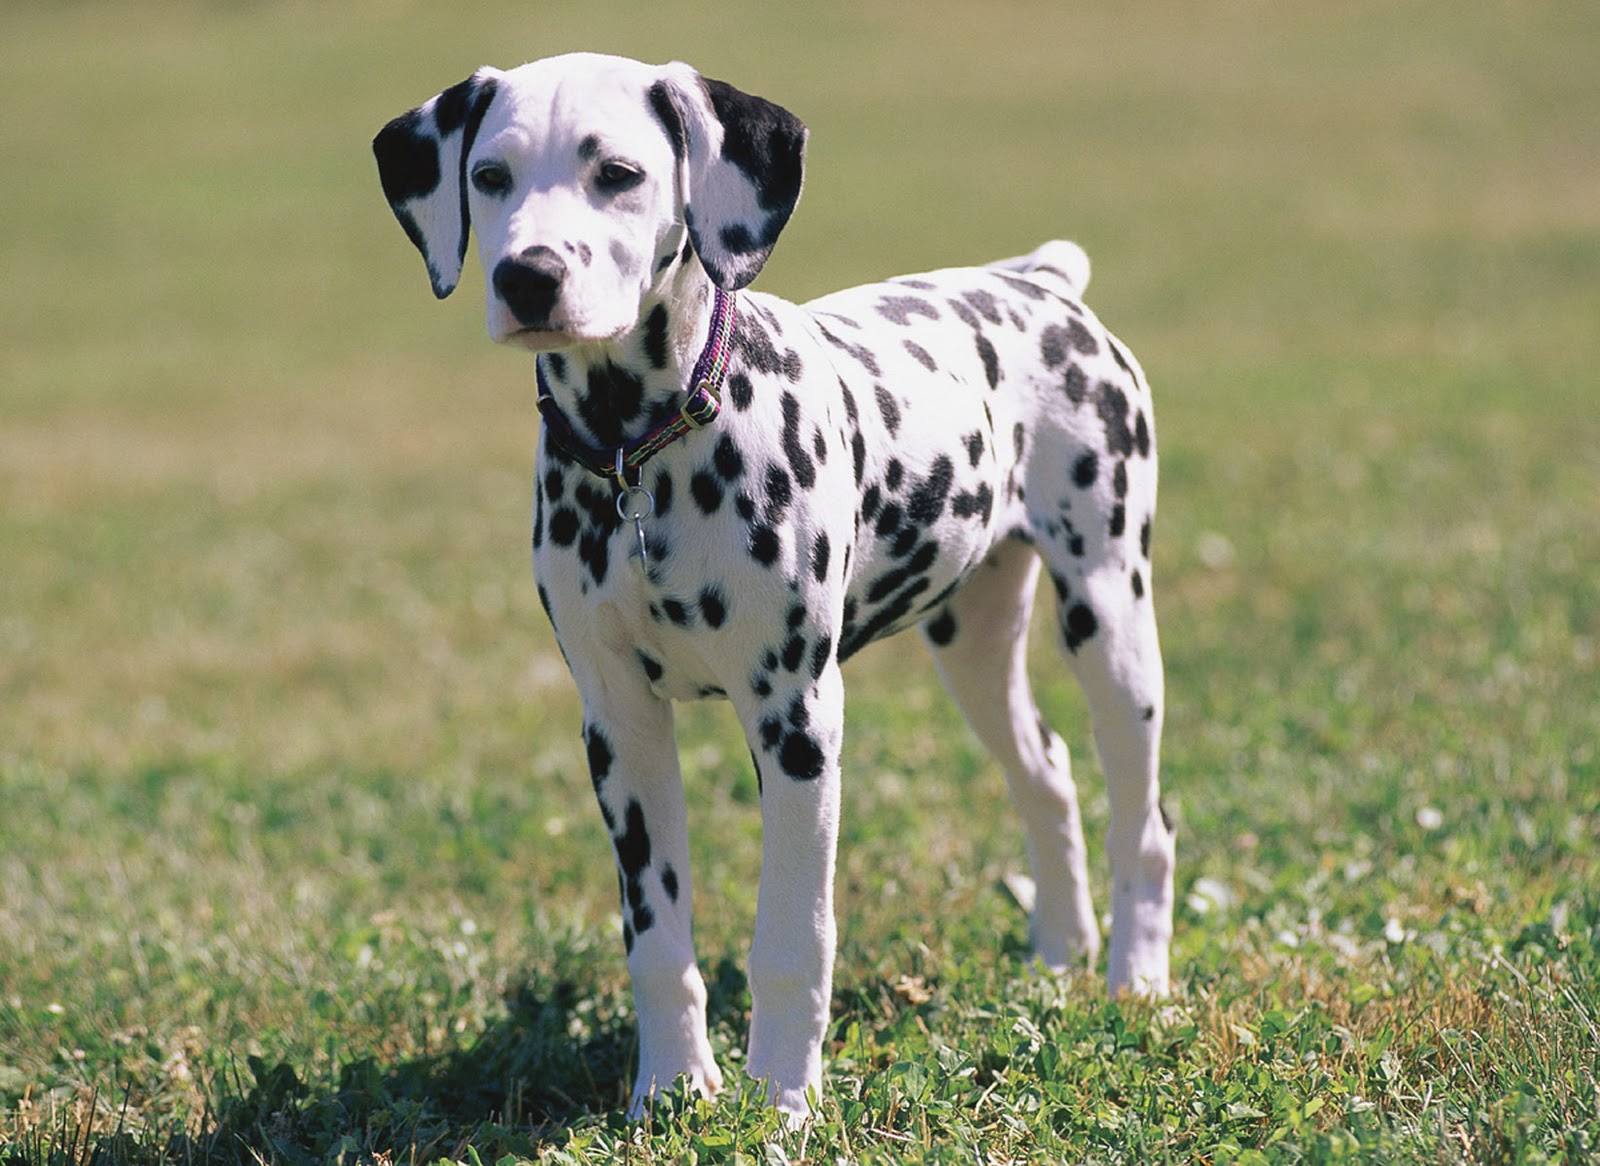 Thinking Aloud: Dogs: Dalmatian